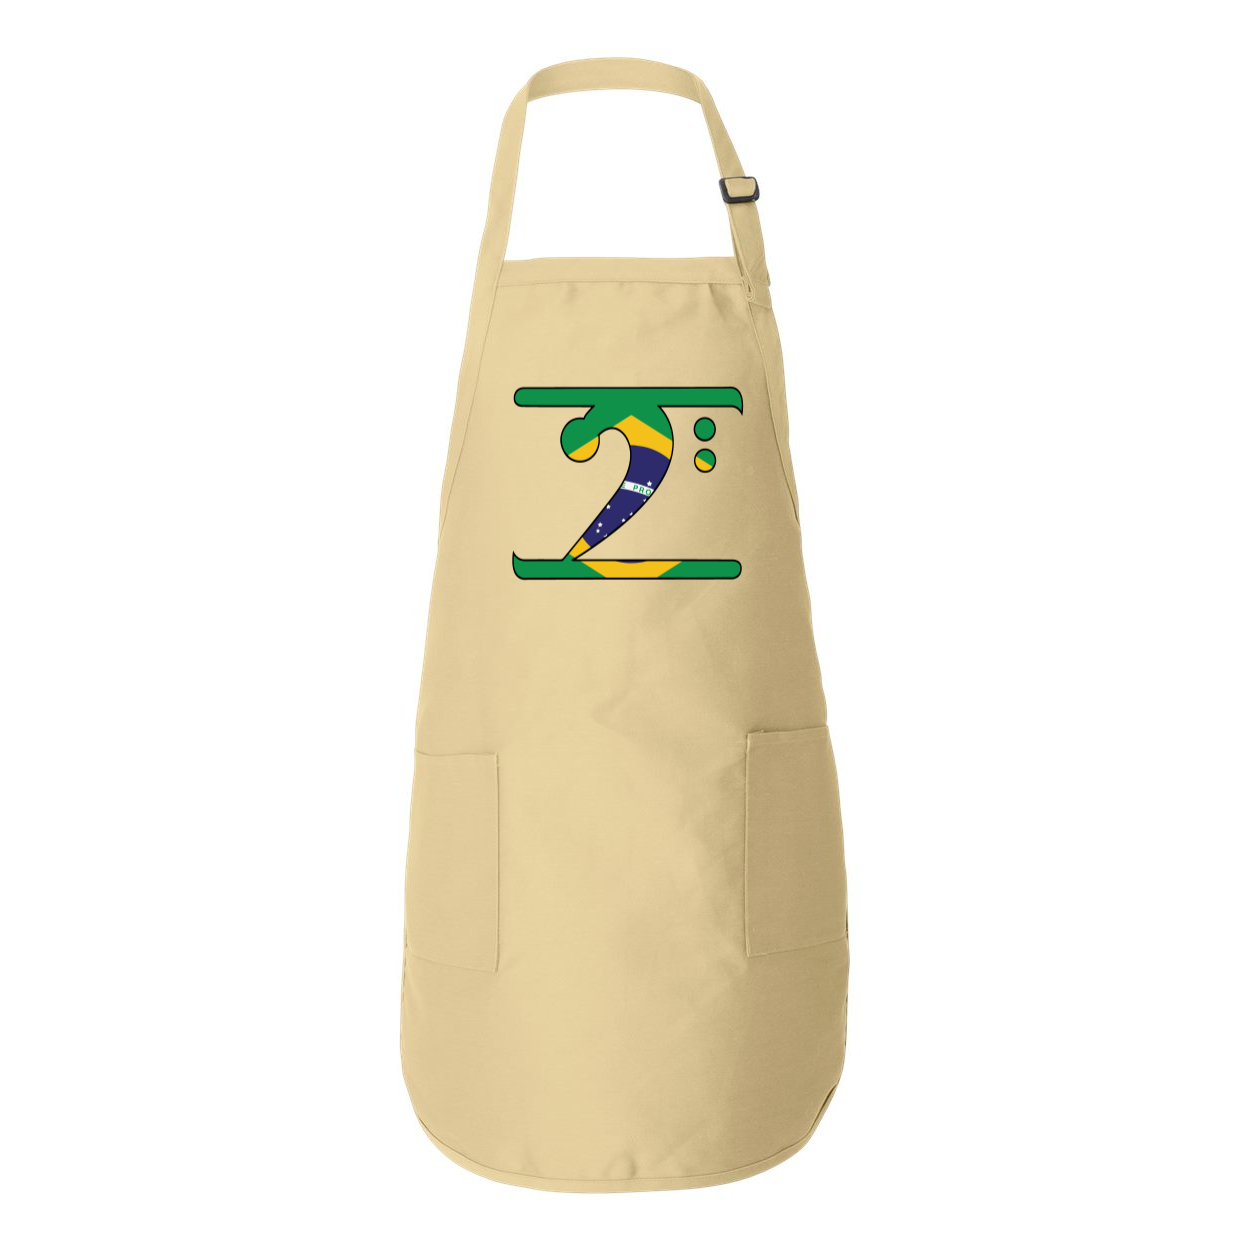 BRAZIL LBW Full-Length Apron with Pockets - Lathon Bass Wear